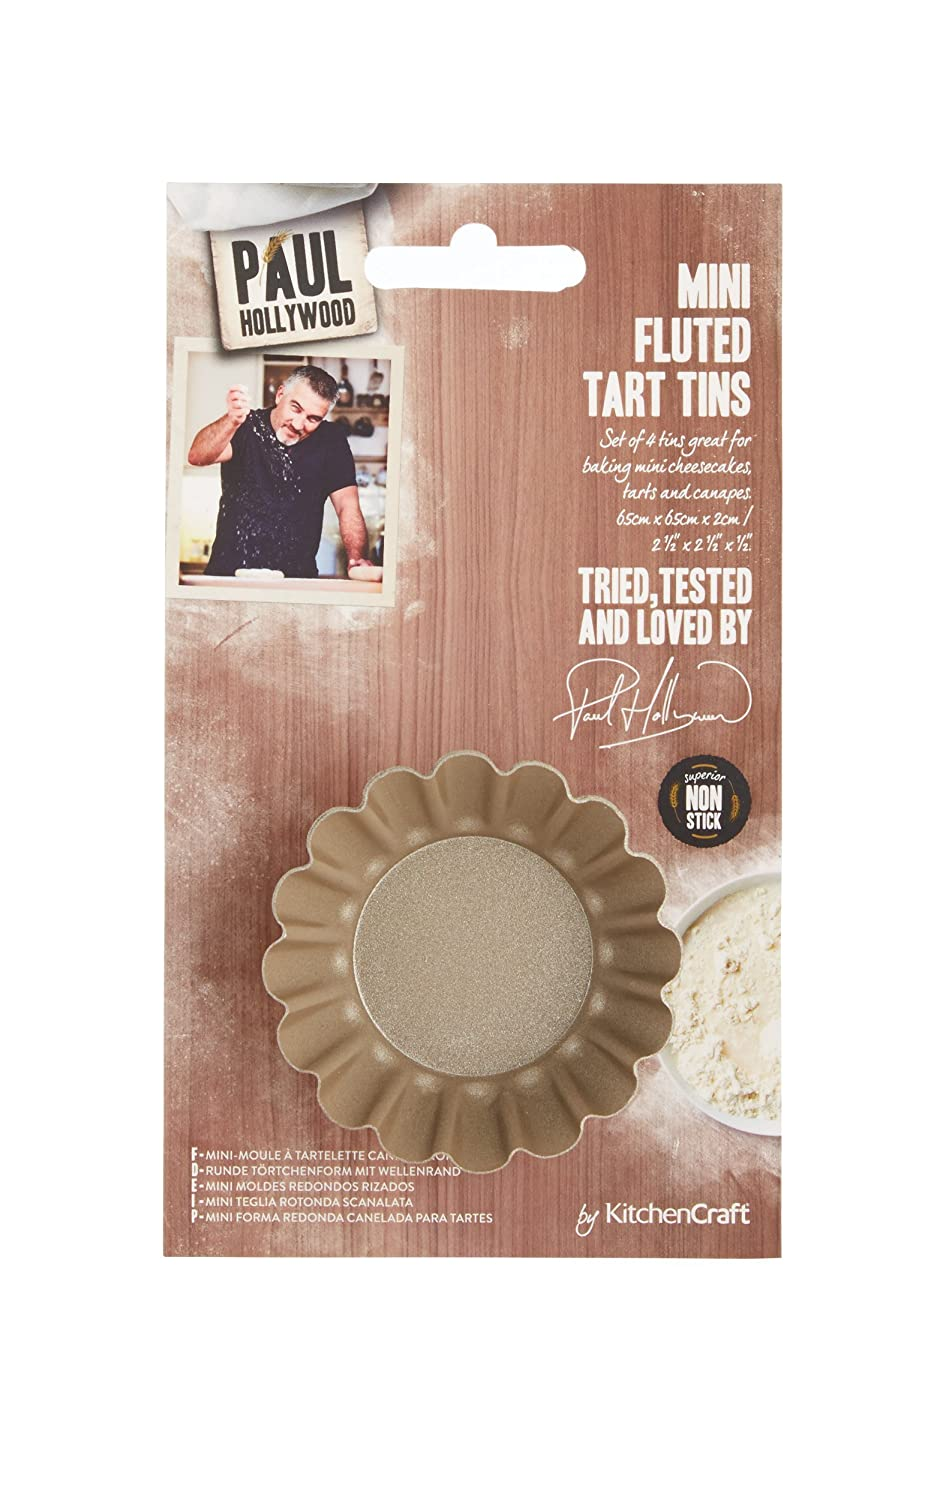 Amazon.com: Paul Hollywood By Kitchencraft Non-stick Mini Fluted Tart Tins, 6.5cm - Set Of: Kitchen & Dining